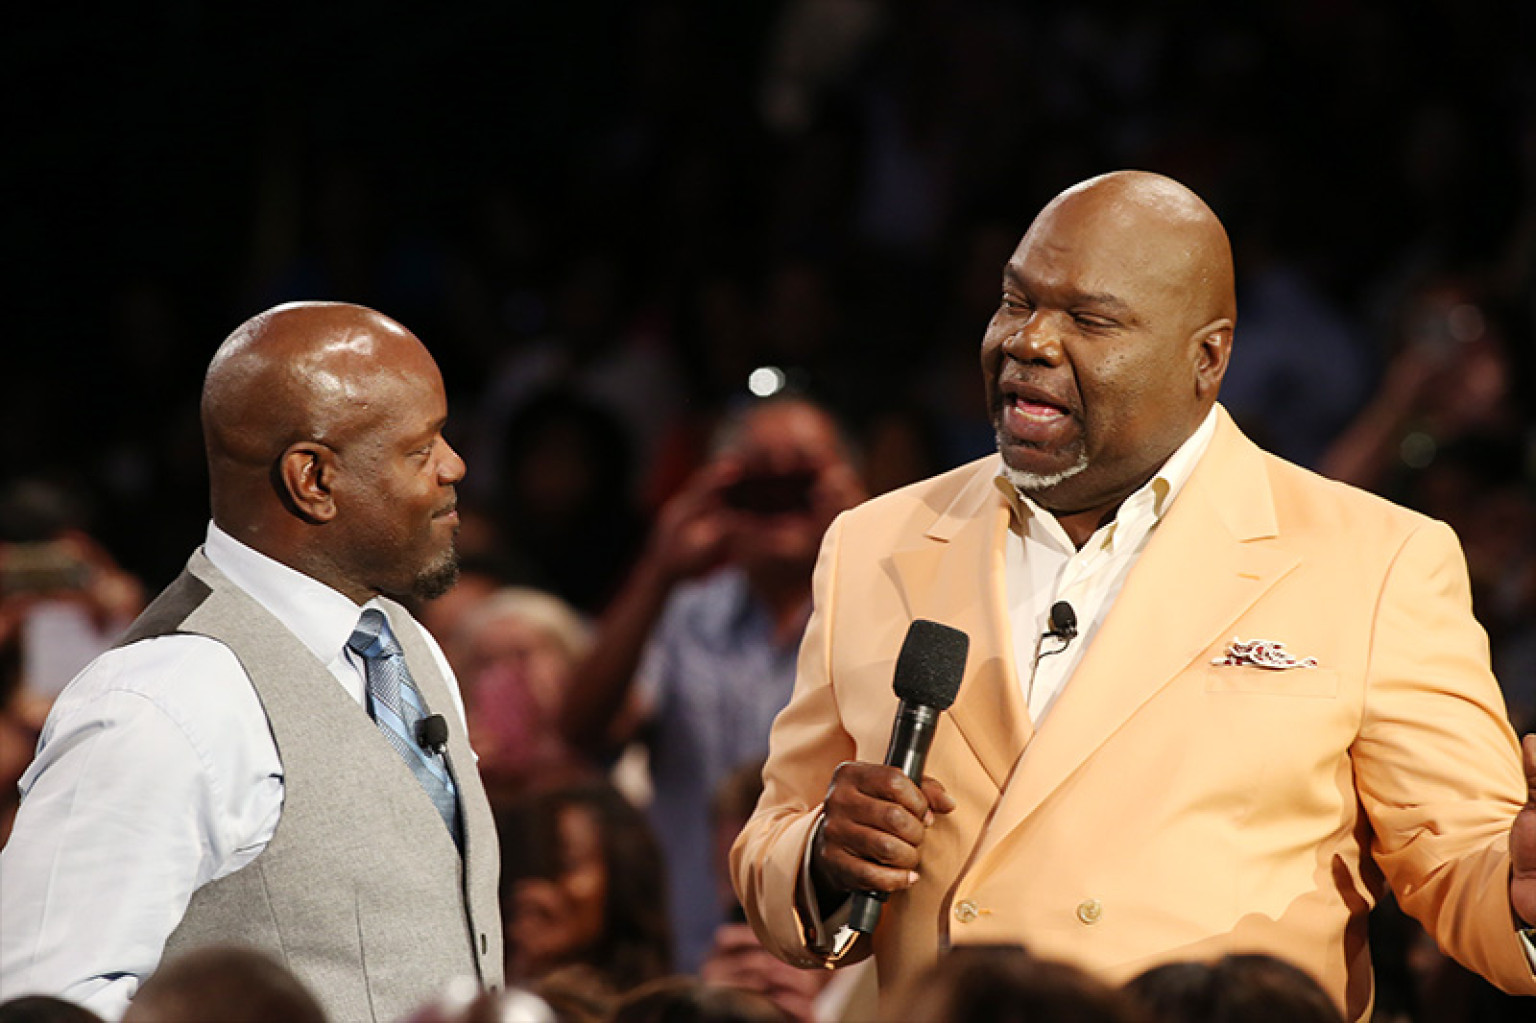 Emmitt Smith, NFL Star, Says He Fought To Be In His Daughter's Life (VIDEO)  | HuffPost